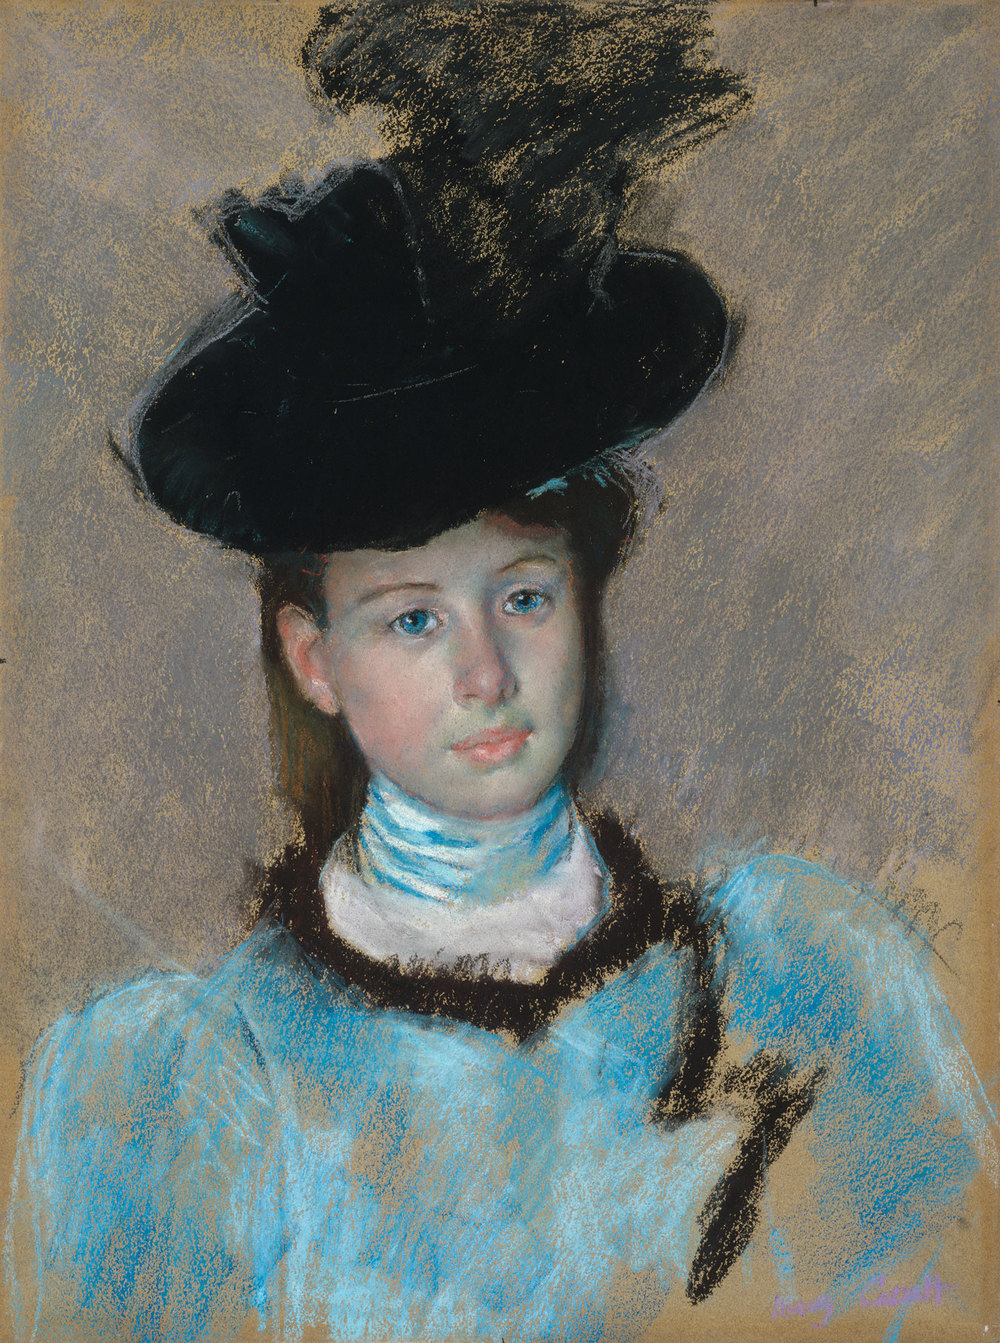 Mary Cassatt, The Black Hat, c. 1890, pastel National Gallery of Art, Washington, Collection of Mr. and Mrs. Paul Mellon